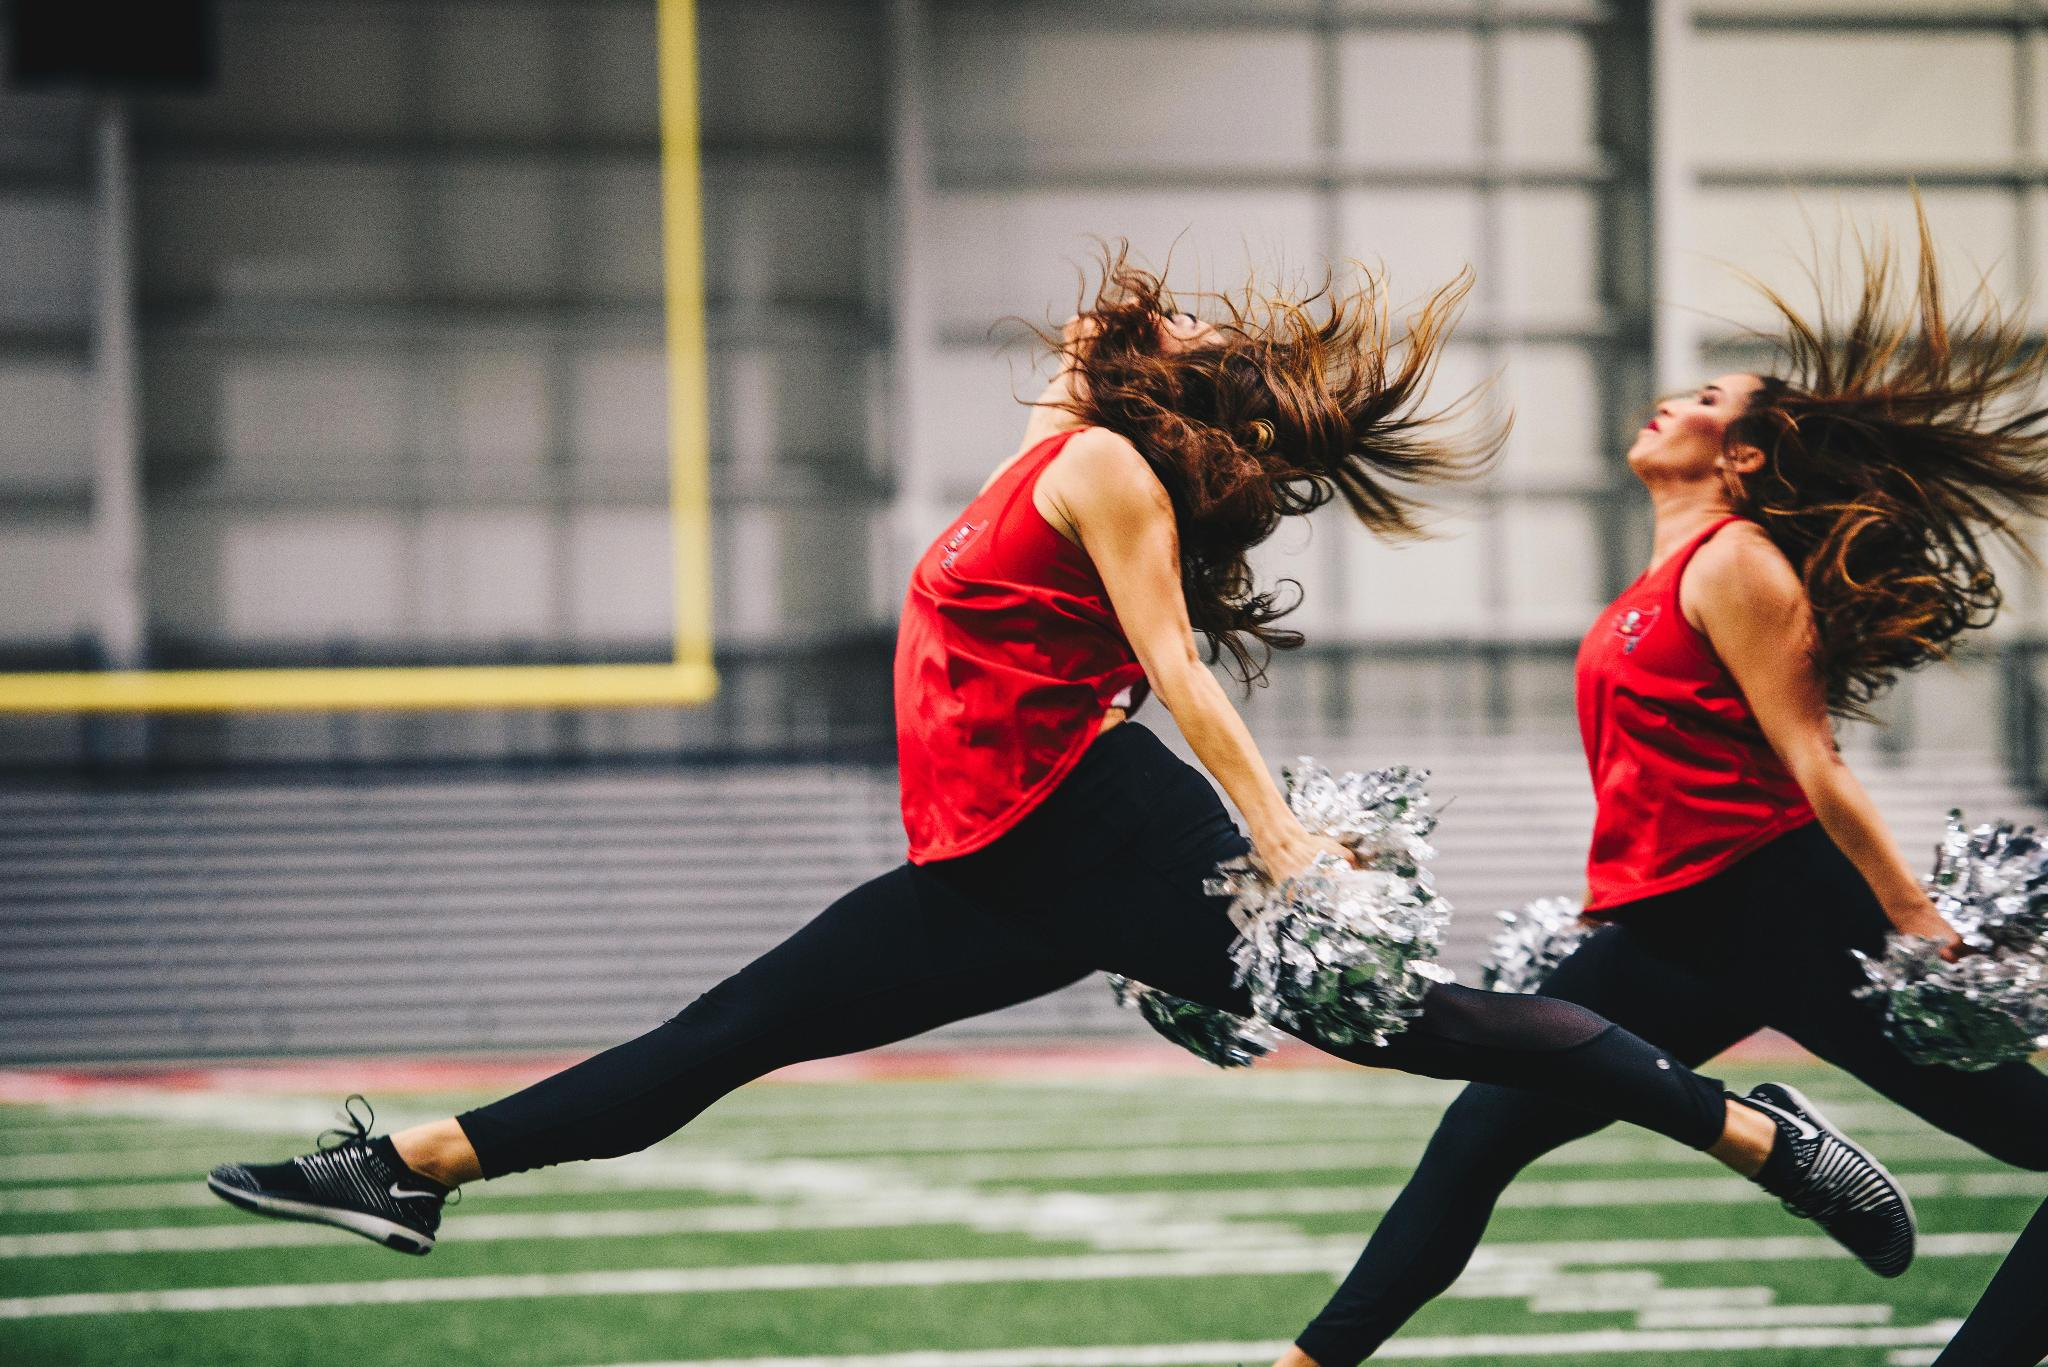 View pictures from @Tbbcheer's final practice of the 2017 season!  ��: https://t.co/Mf7VIGWDaW https://t.co/ps0JcmrvXR